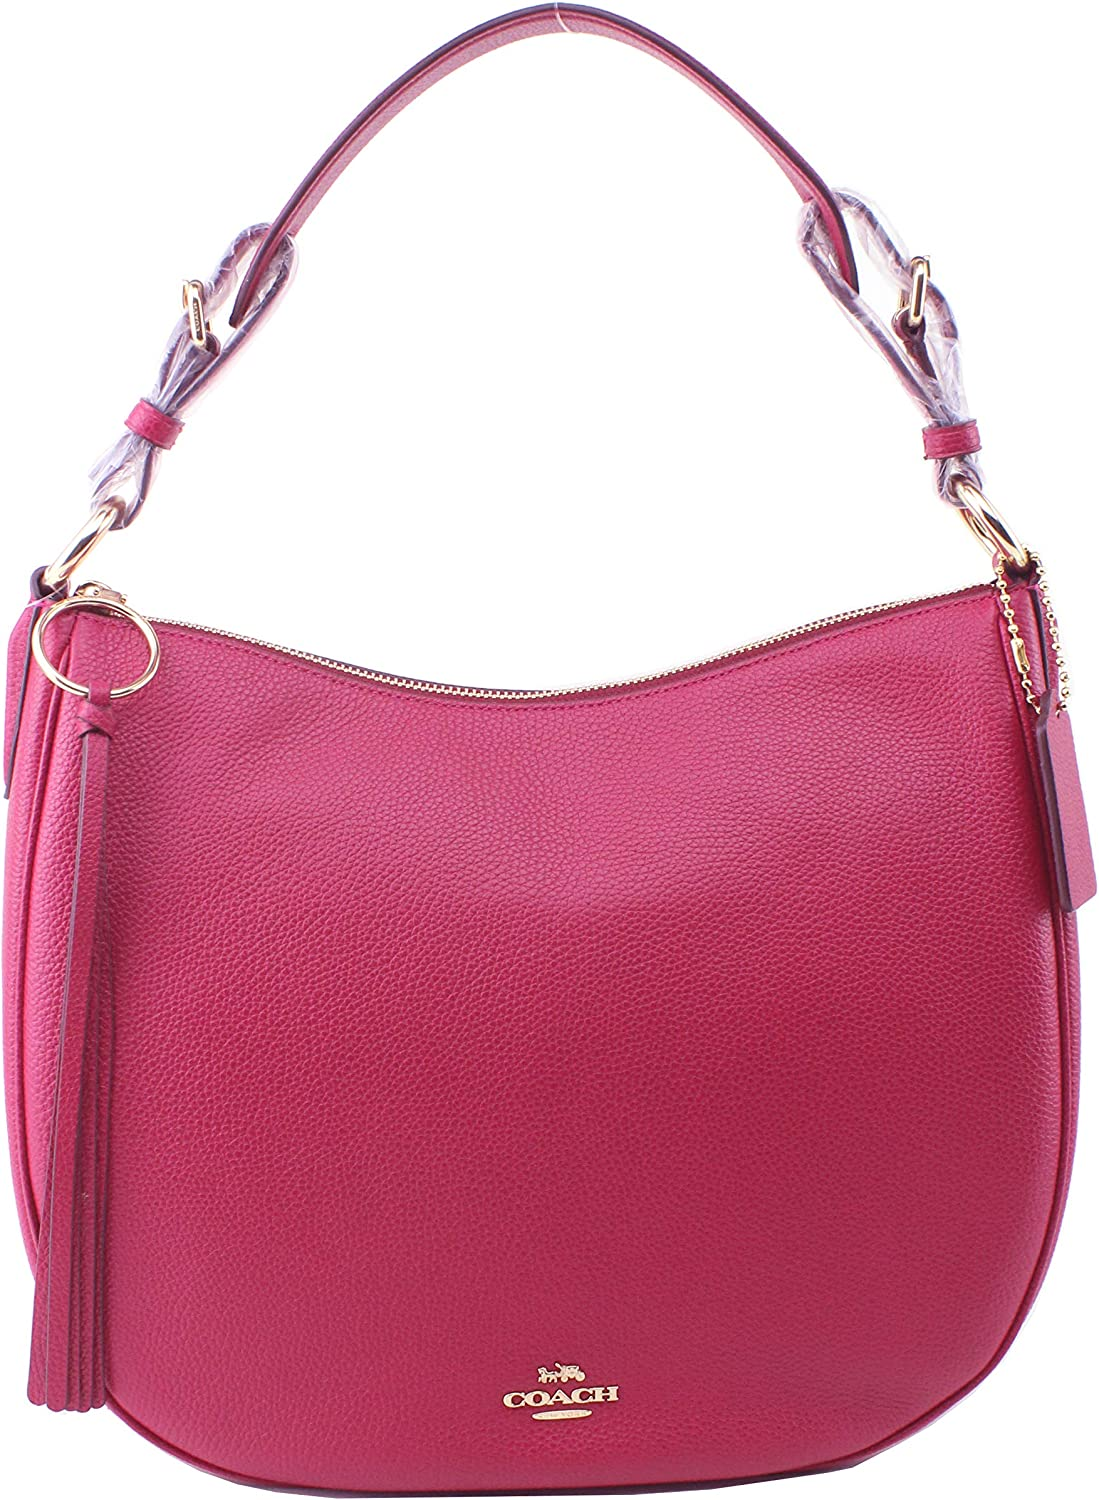 B07WZP8GDH Coach Sutton Hobo in Polished Pebble Leather 81ndP-IgeeL.UL1500_